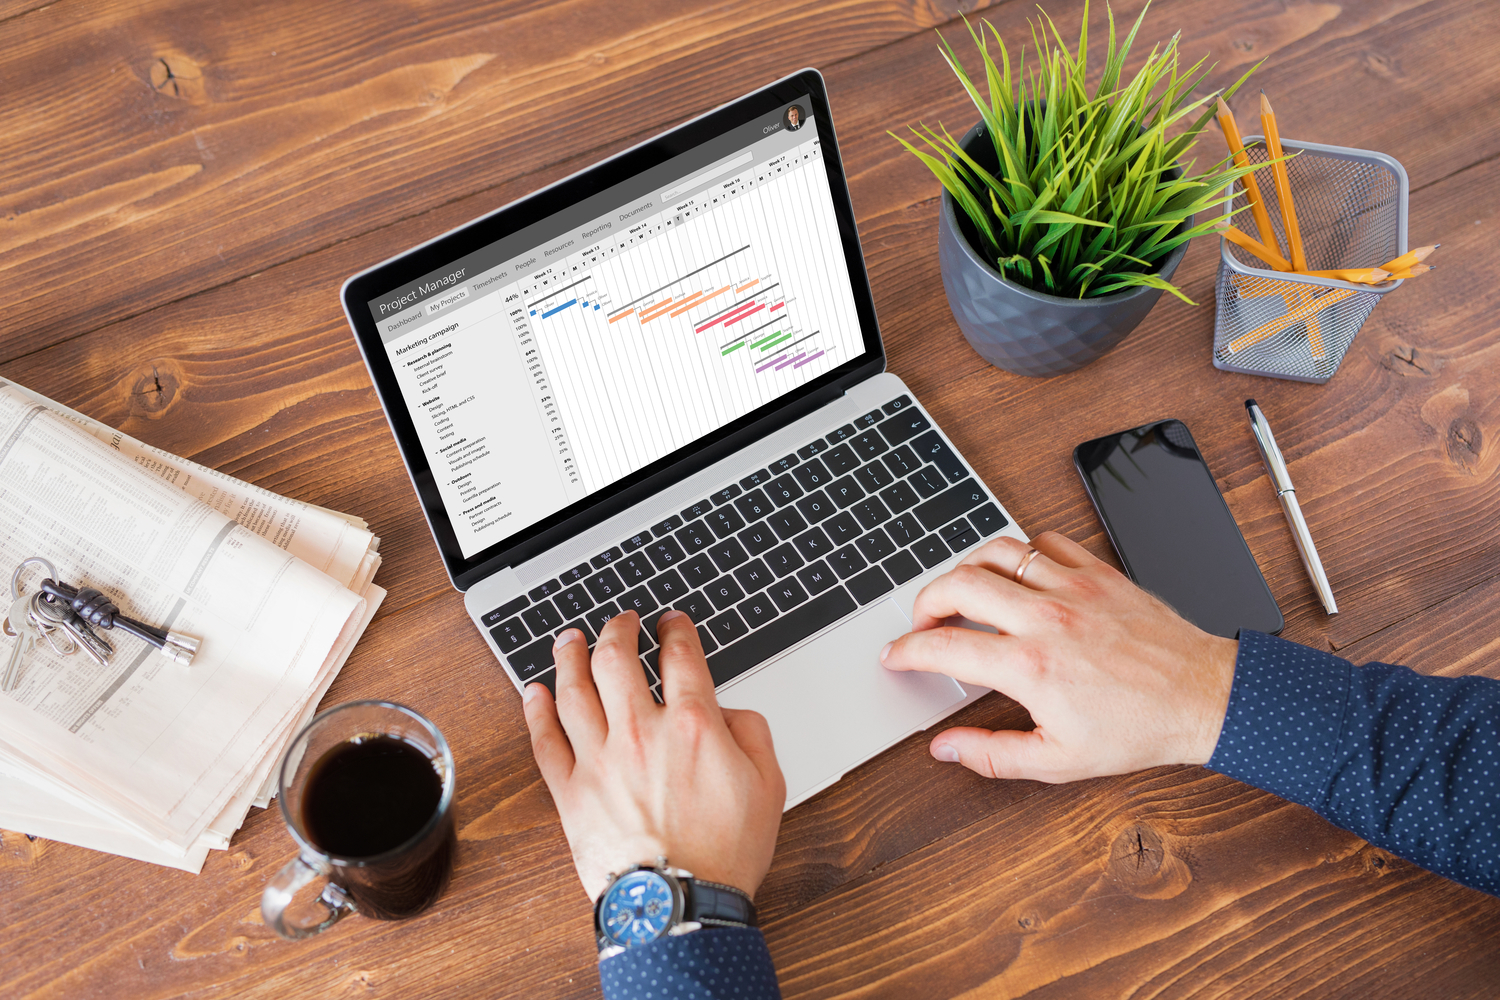 5 BEST DATA MANAGEMENT SOFTWARE AND TOOLS IN 2021